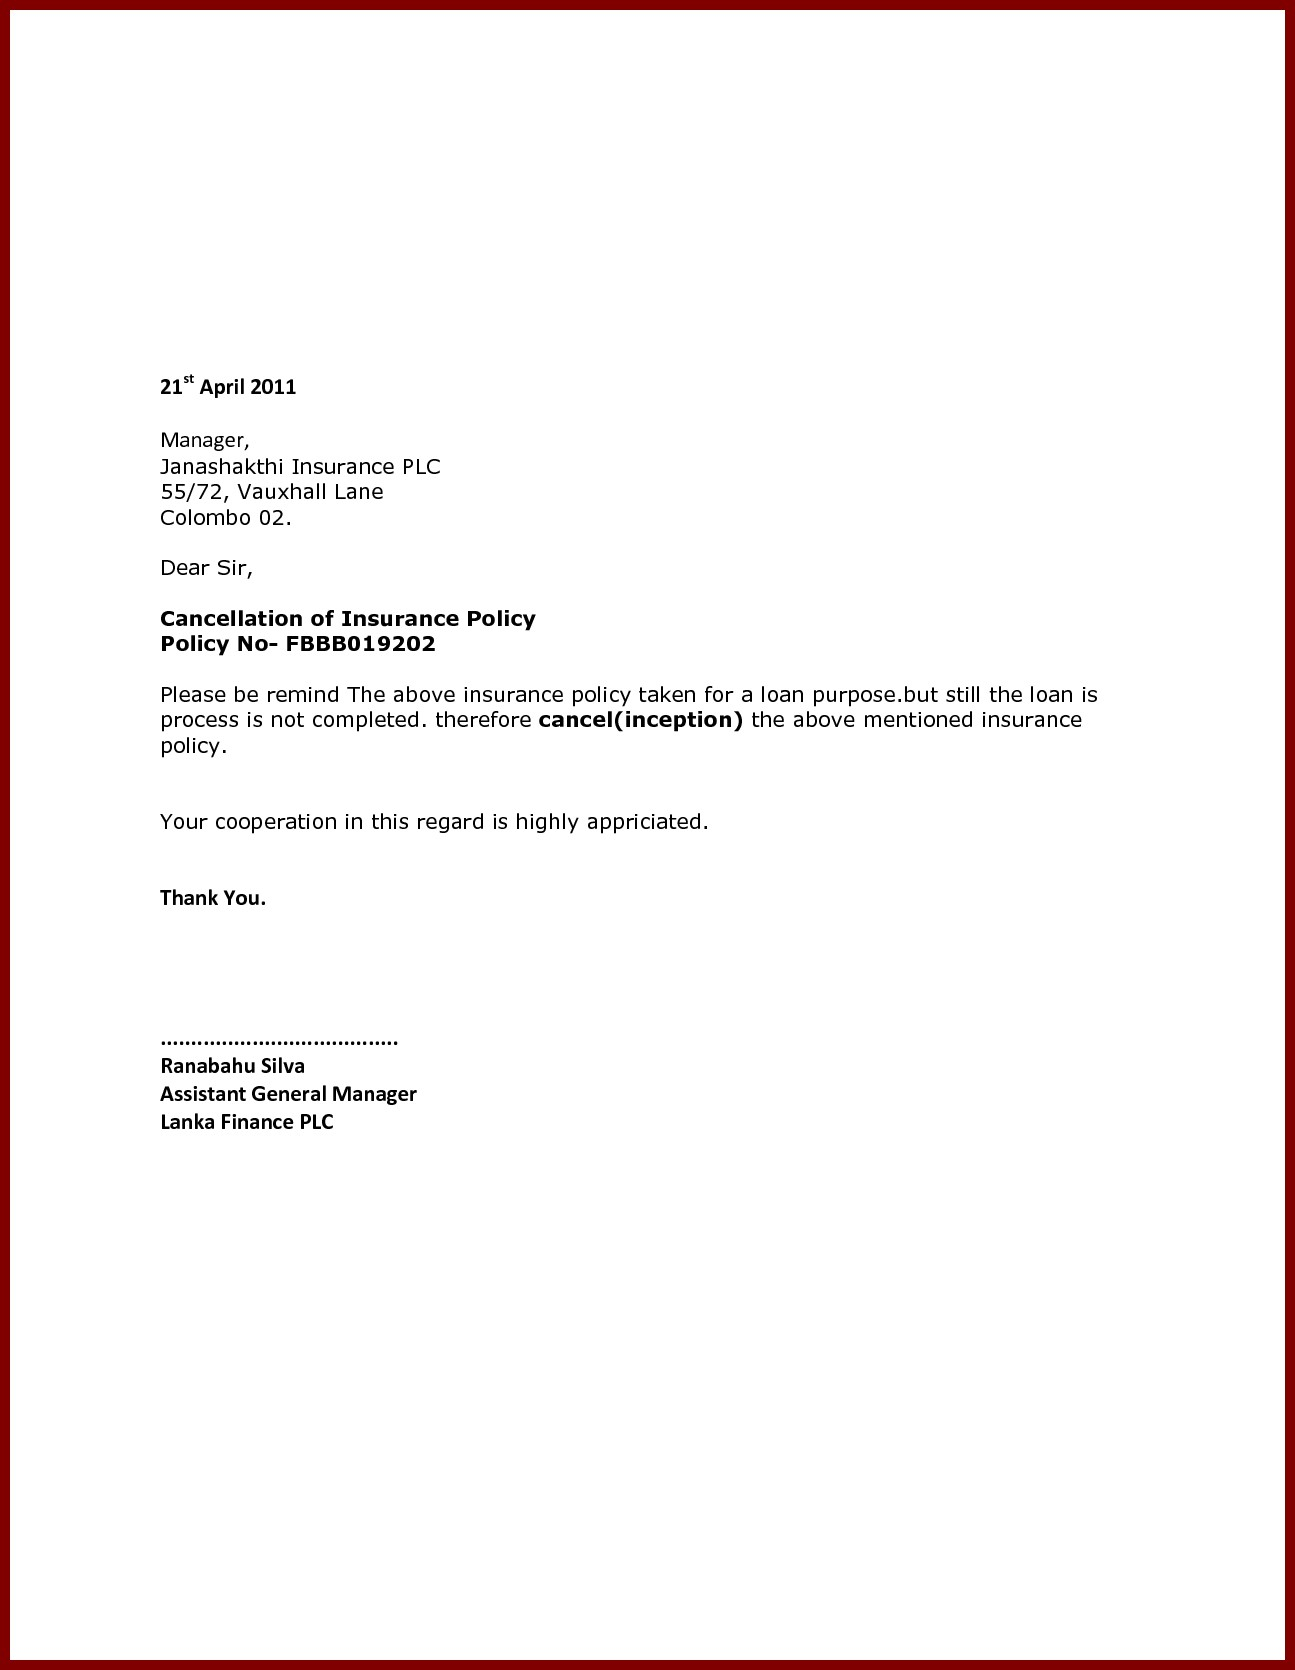 Insurance Cancellation Letter Template - Example Cancellation Letter Save Cancel Service Letter for